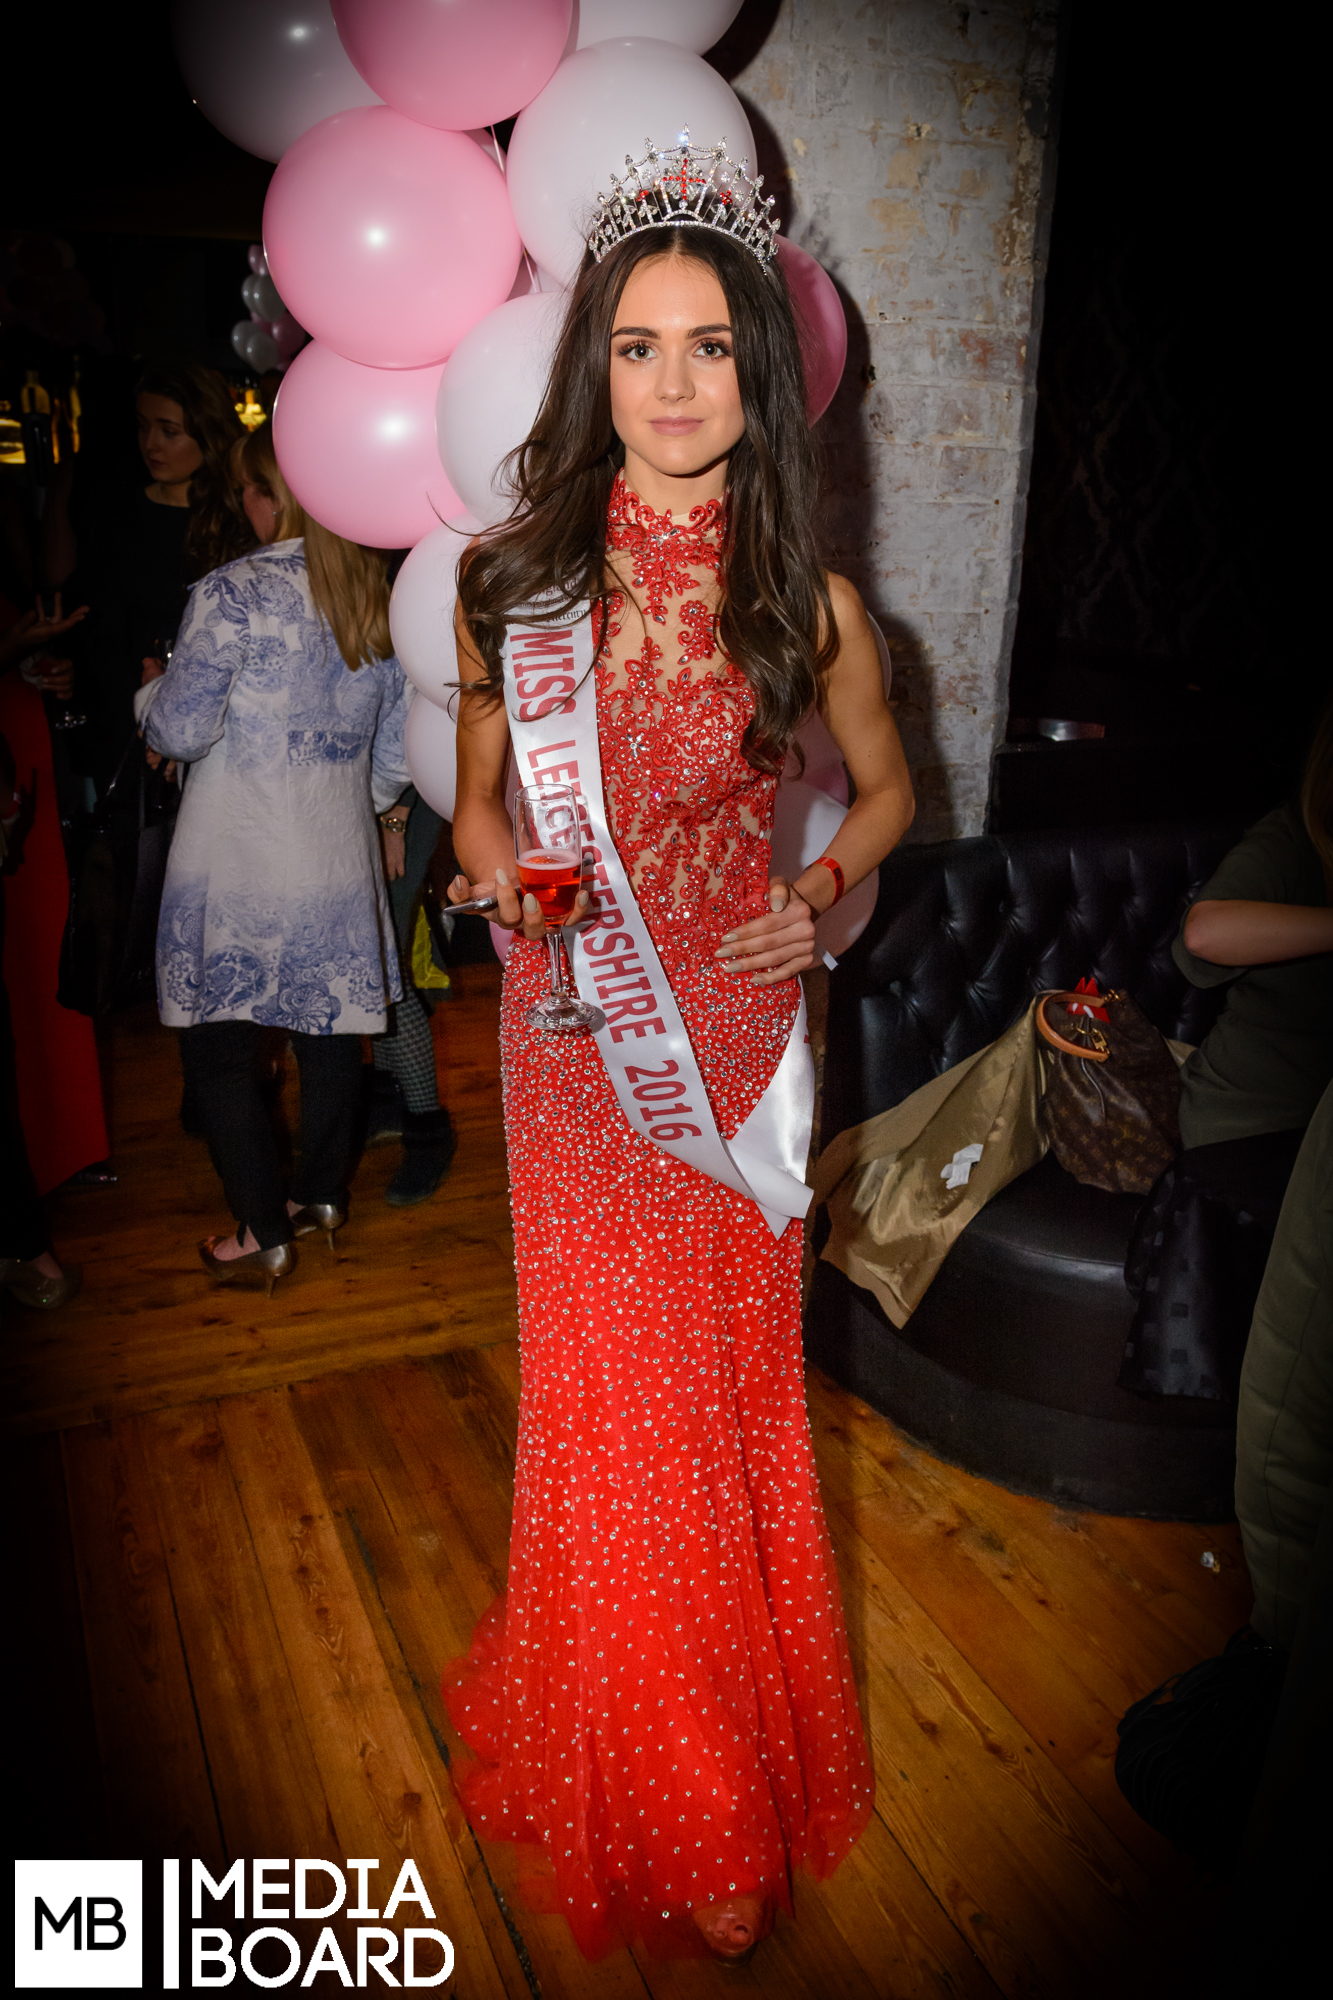 Newly crowned Miss Leicestershire 2016 at MB event